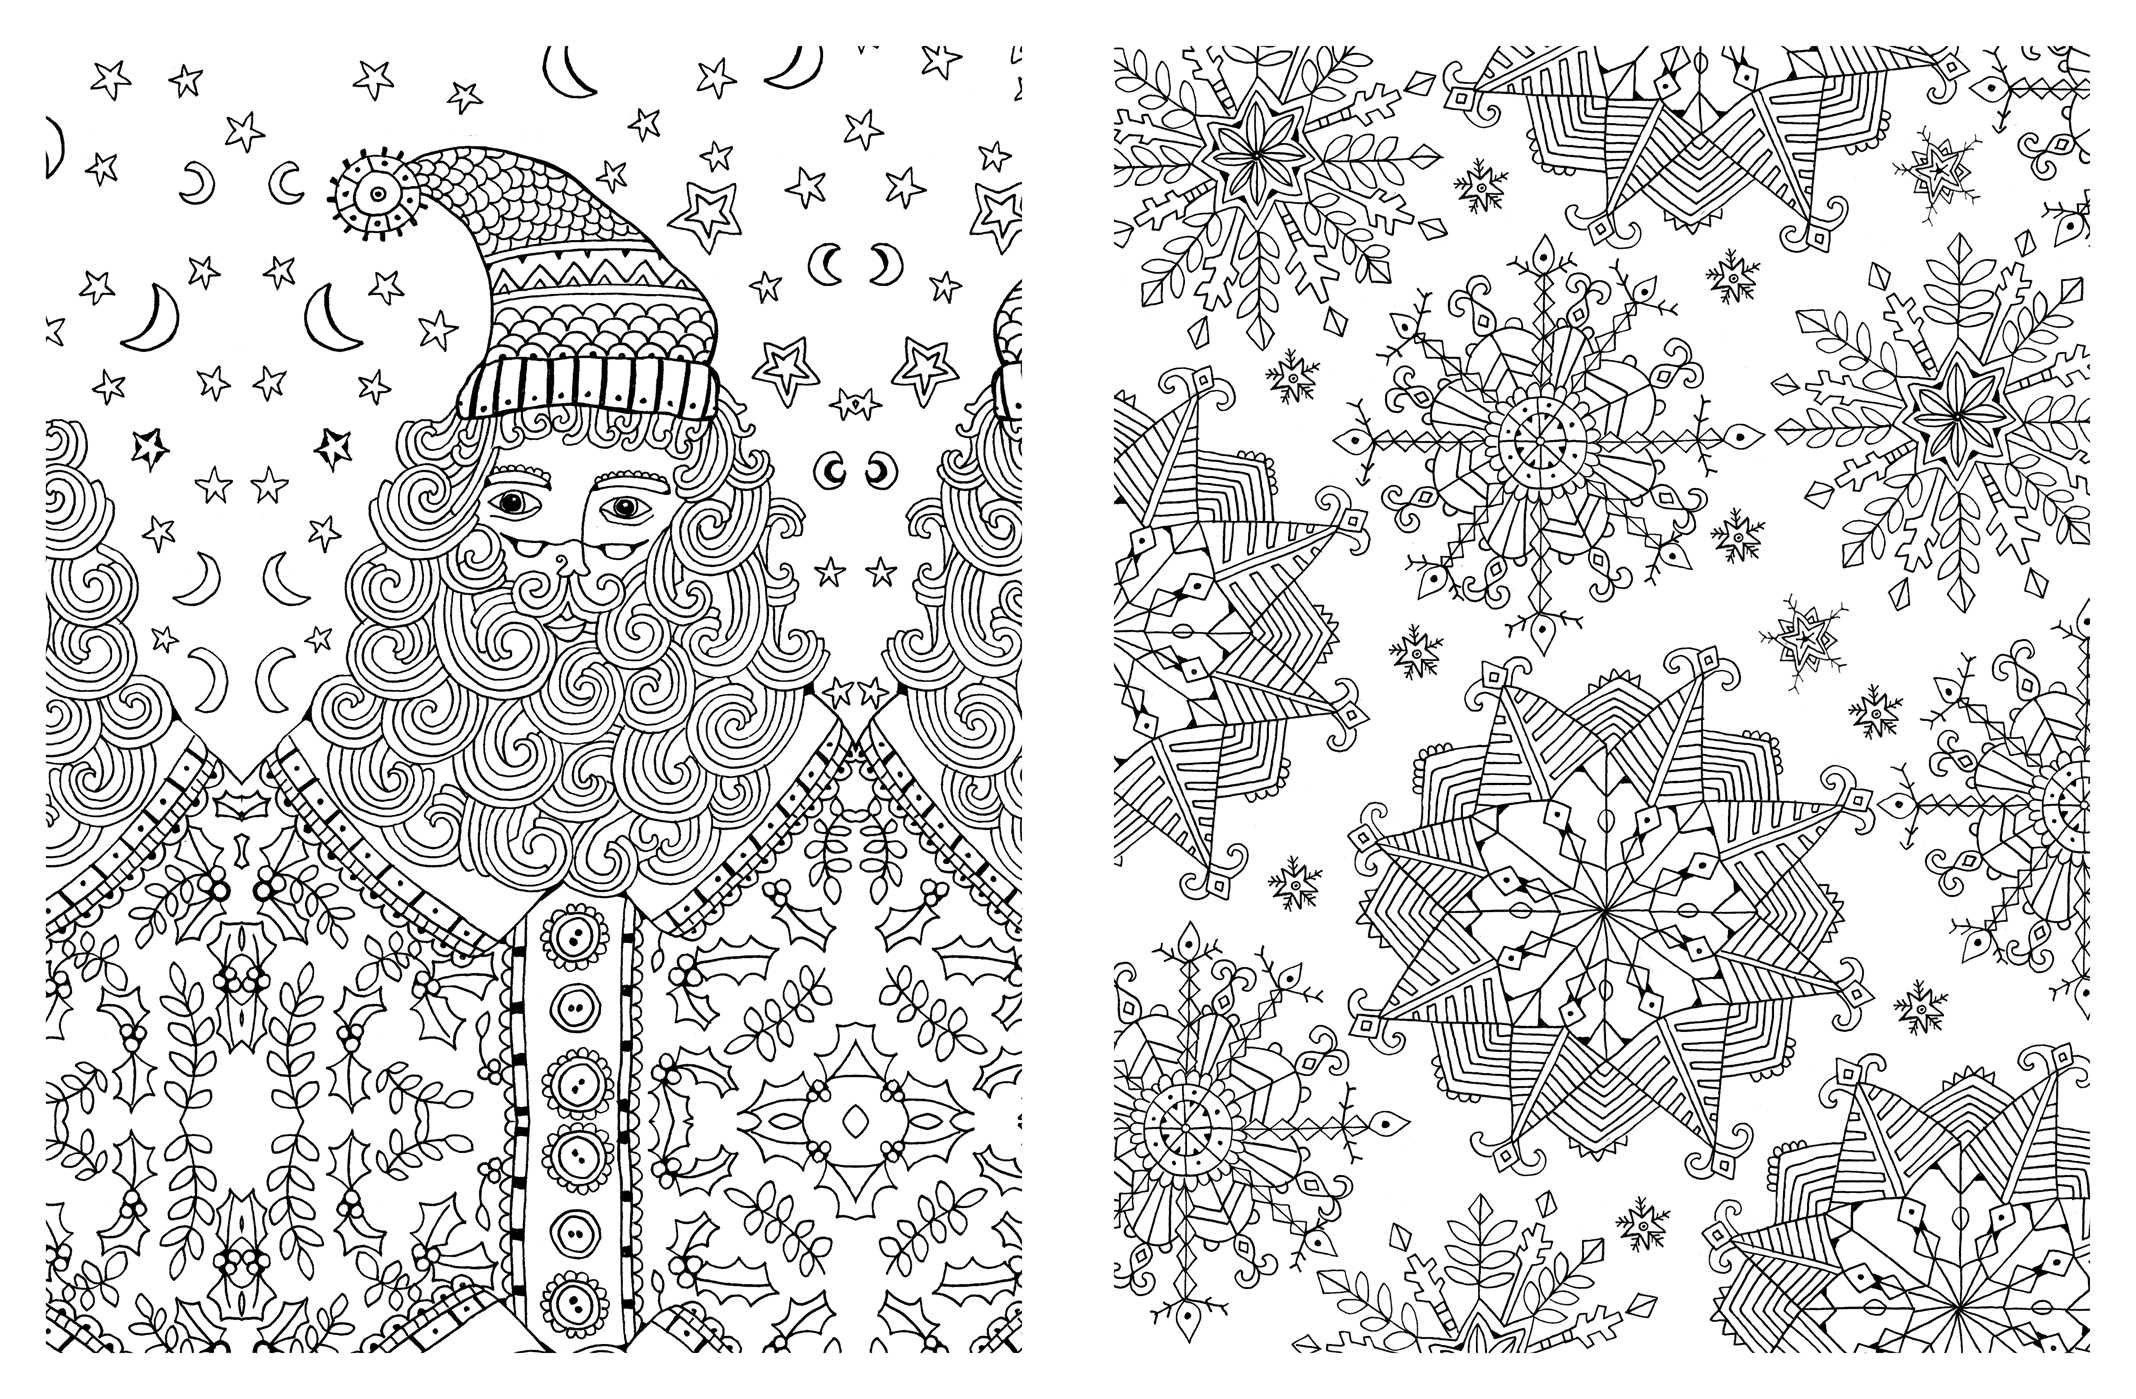 Xmas Coloring Book Pages With Amazon Com Posh Adult Christmas Designs For Fun